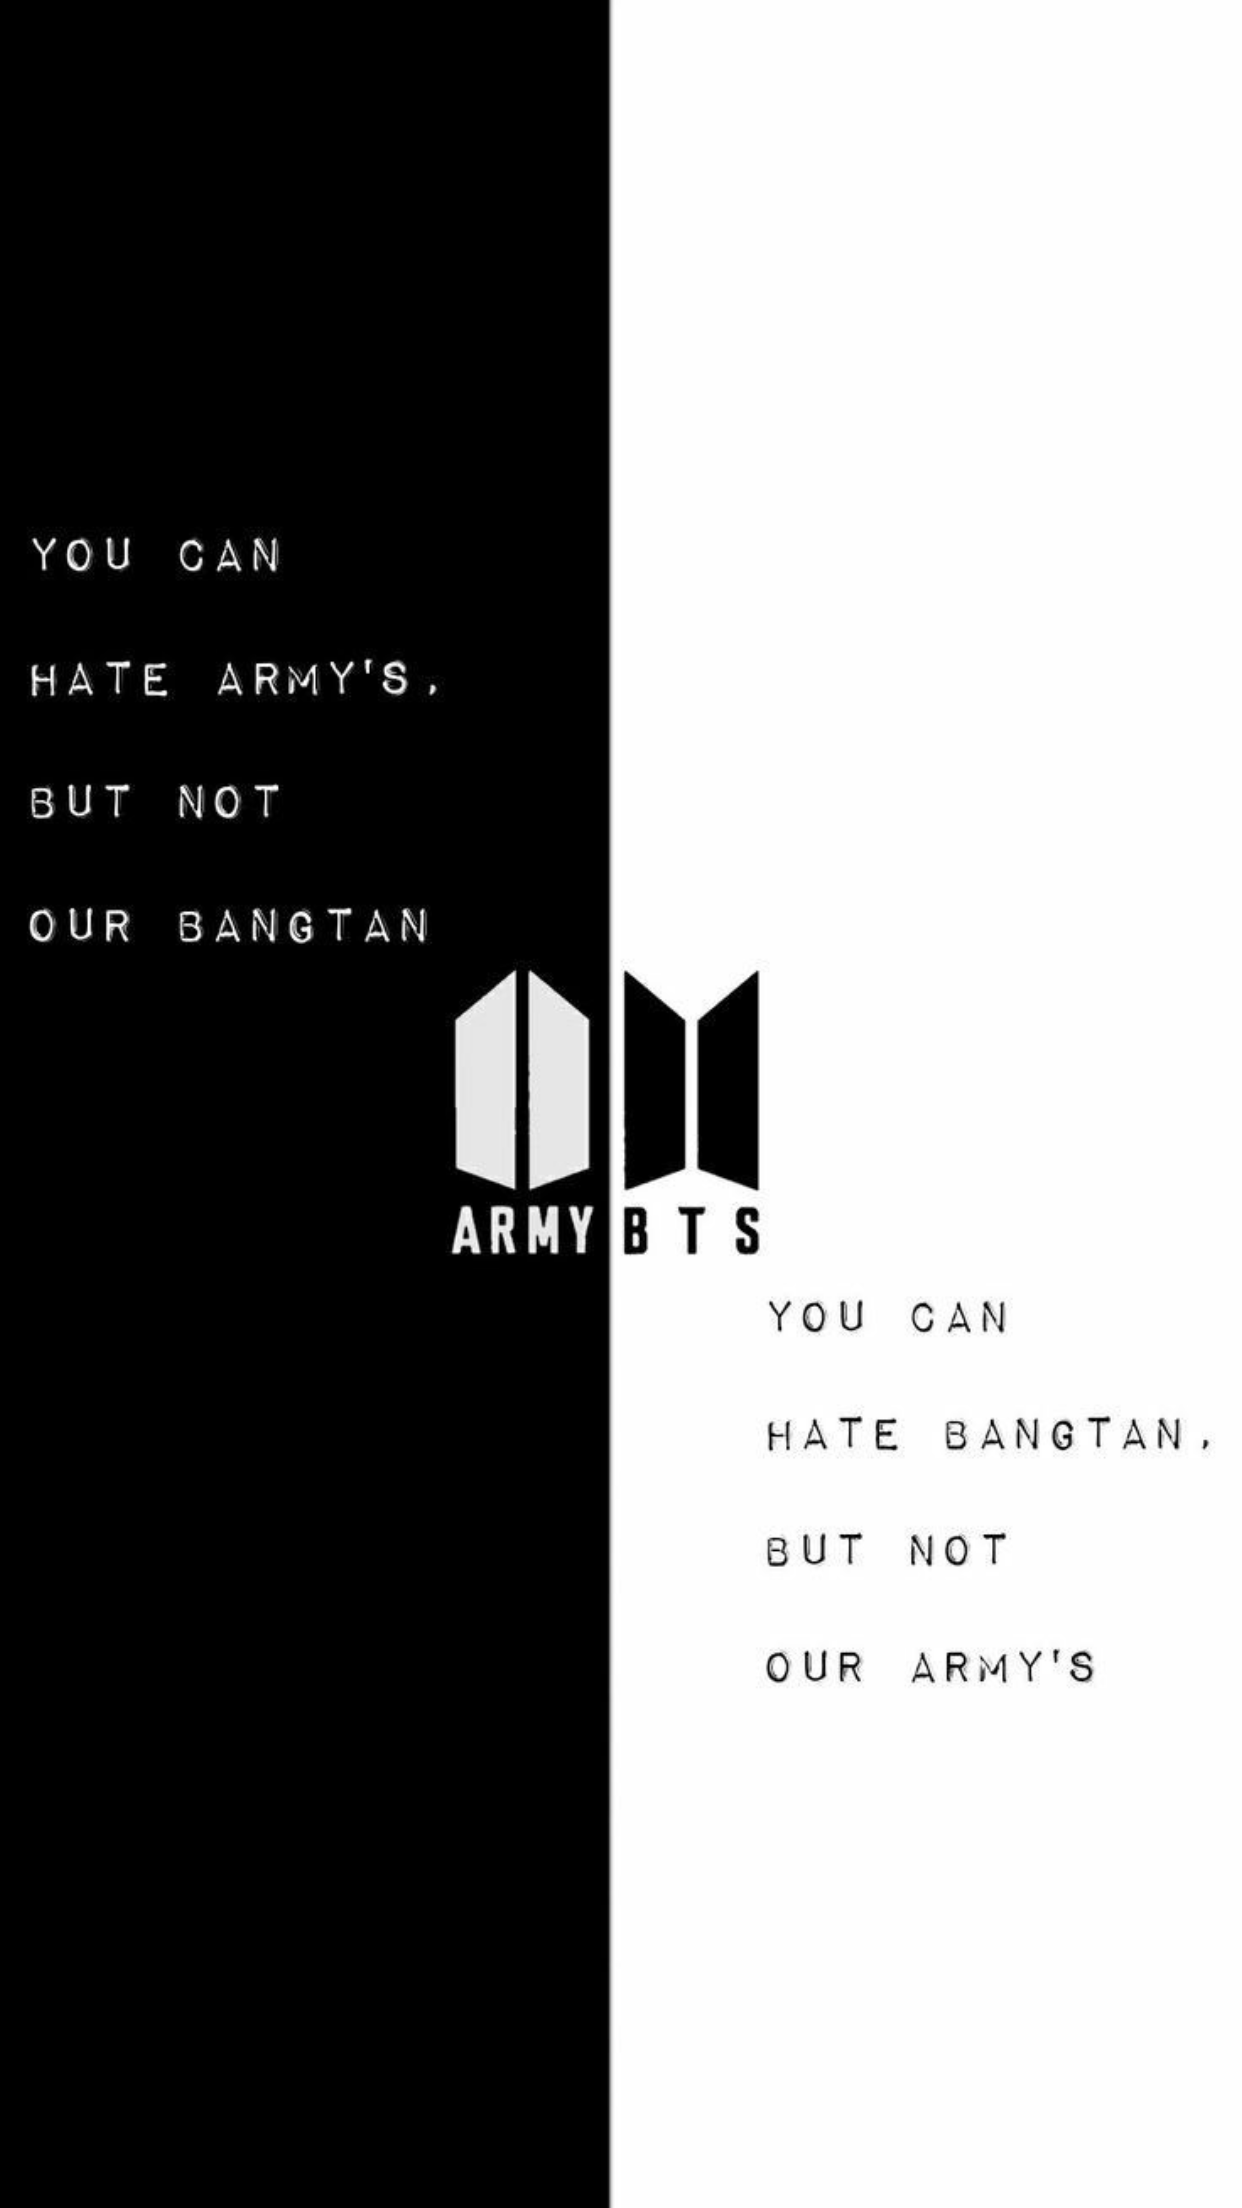 quotes bts army bts quotes lockscreen 🍁 bts army amino amino bts